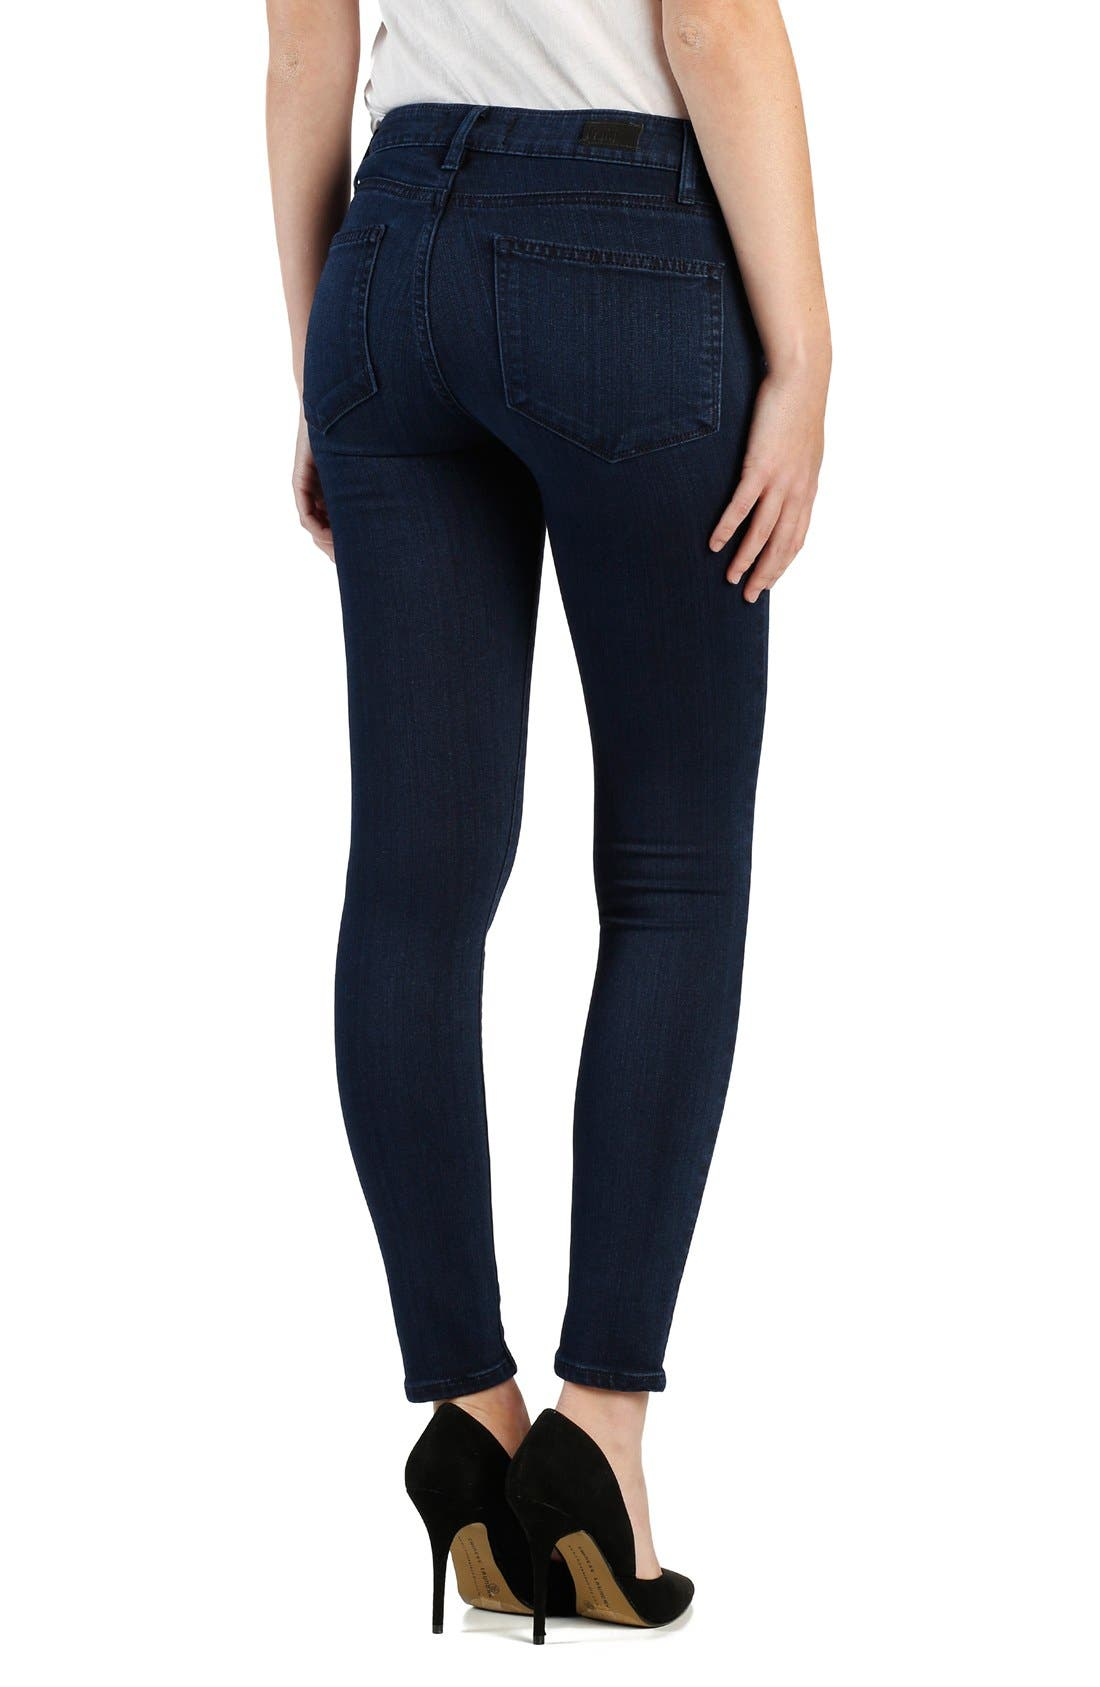 Alternate Image 2  - PAIGE 'Transcend - Verdugo' Ultra Skinny Ankle Jeans (Holly)